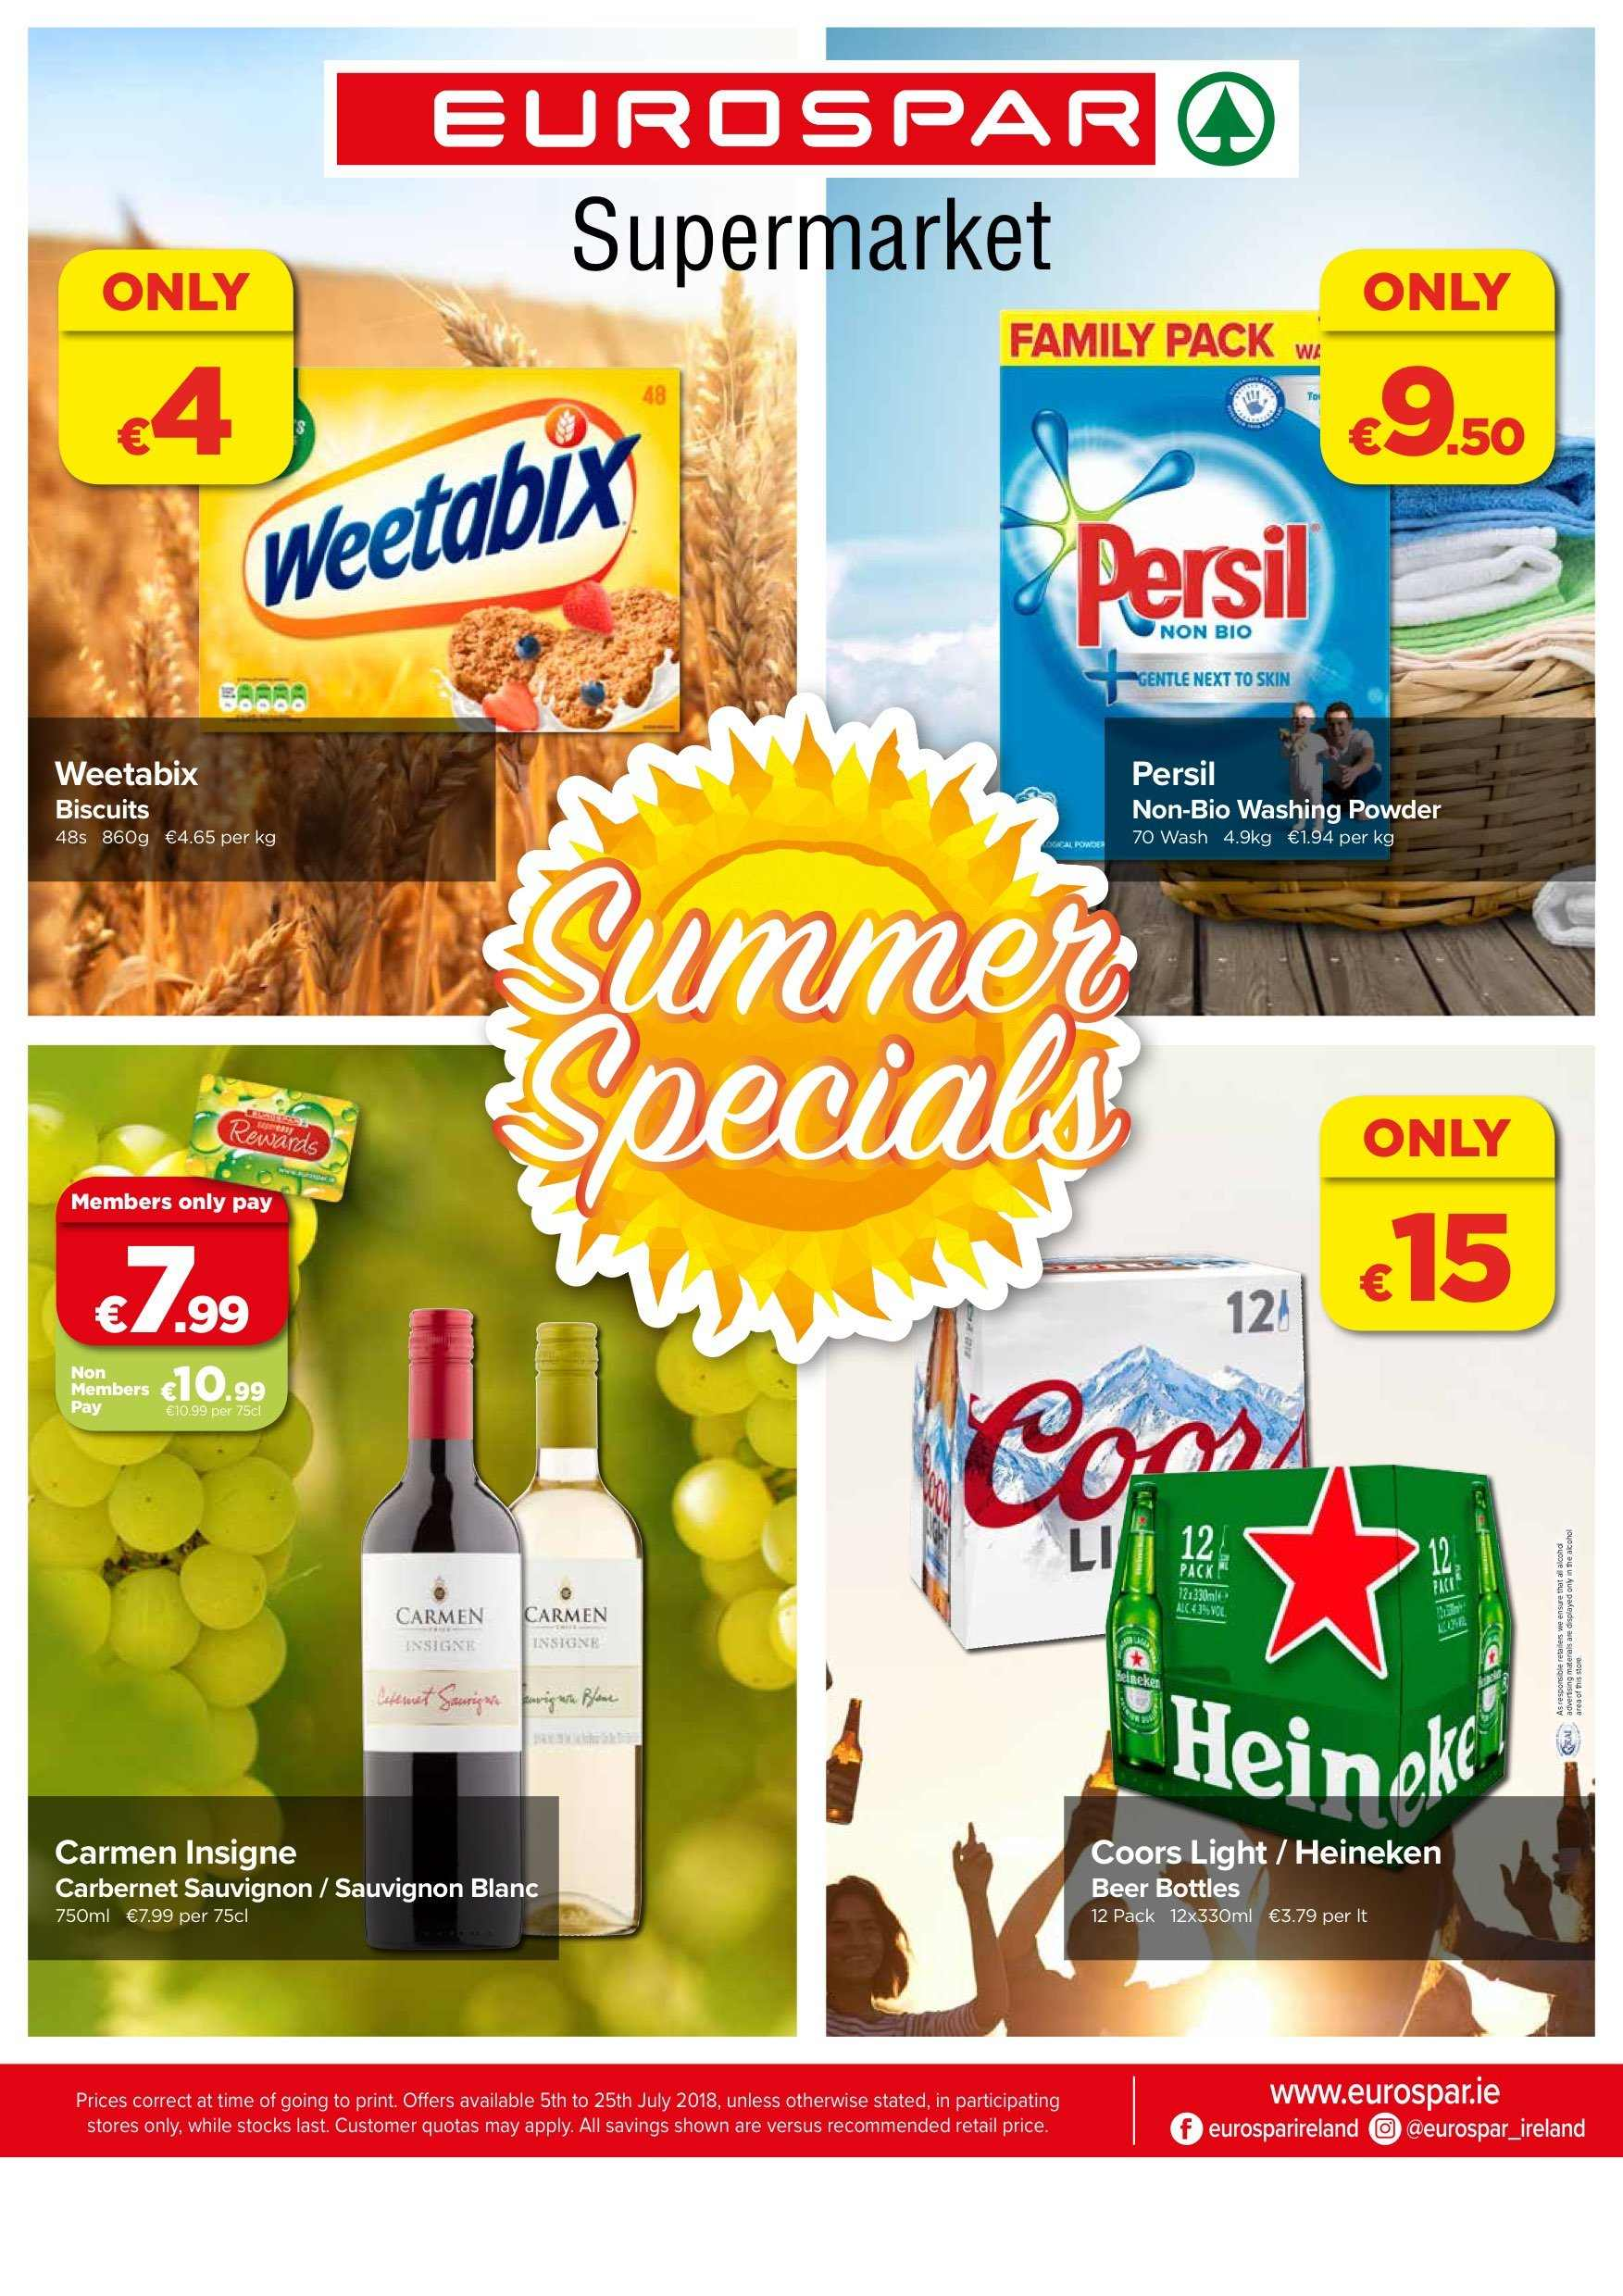 EUROSPAR offer  - 5.7.2018 - 25.7.2018 - Sales products - beer, biscuits, powder, persil, family pack, washing powder. Page 1.